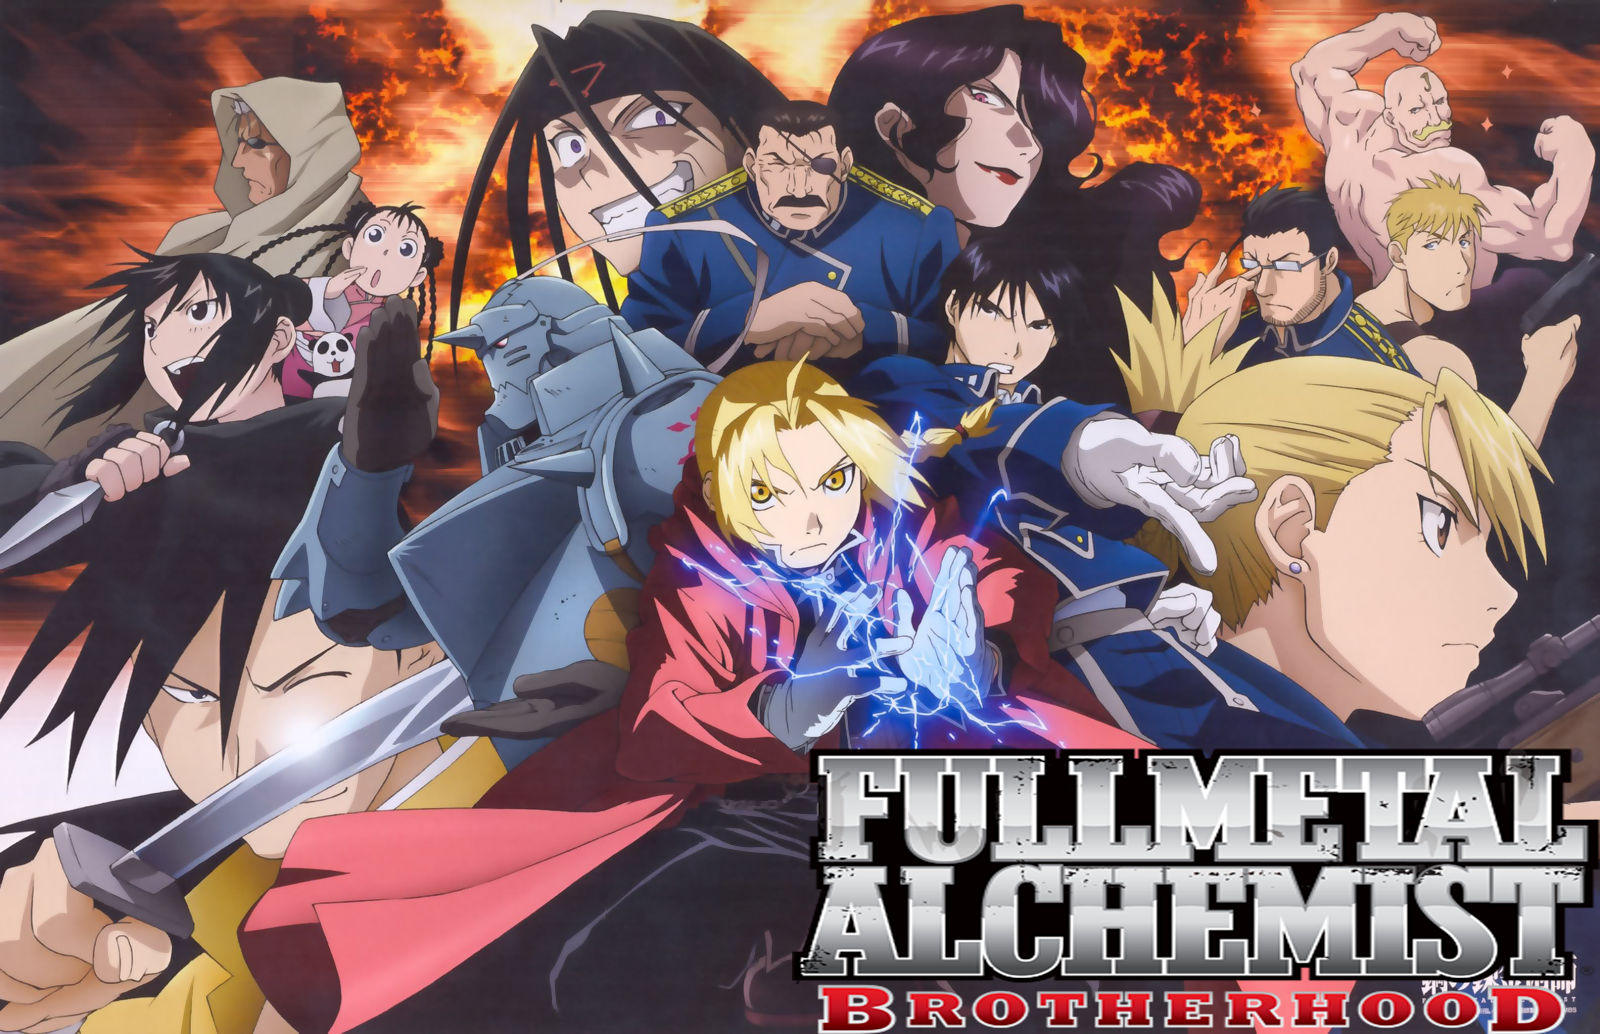 Fullmetal Alchemist Brotherhood 11 Background Wallpaper 1600x1034